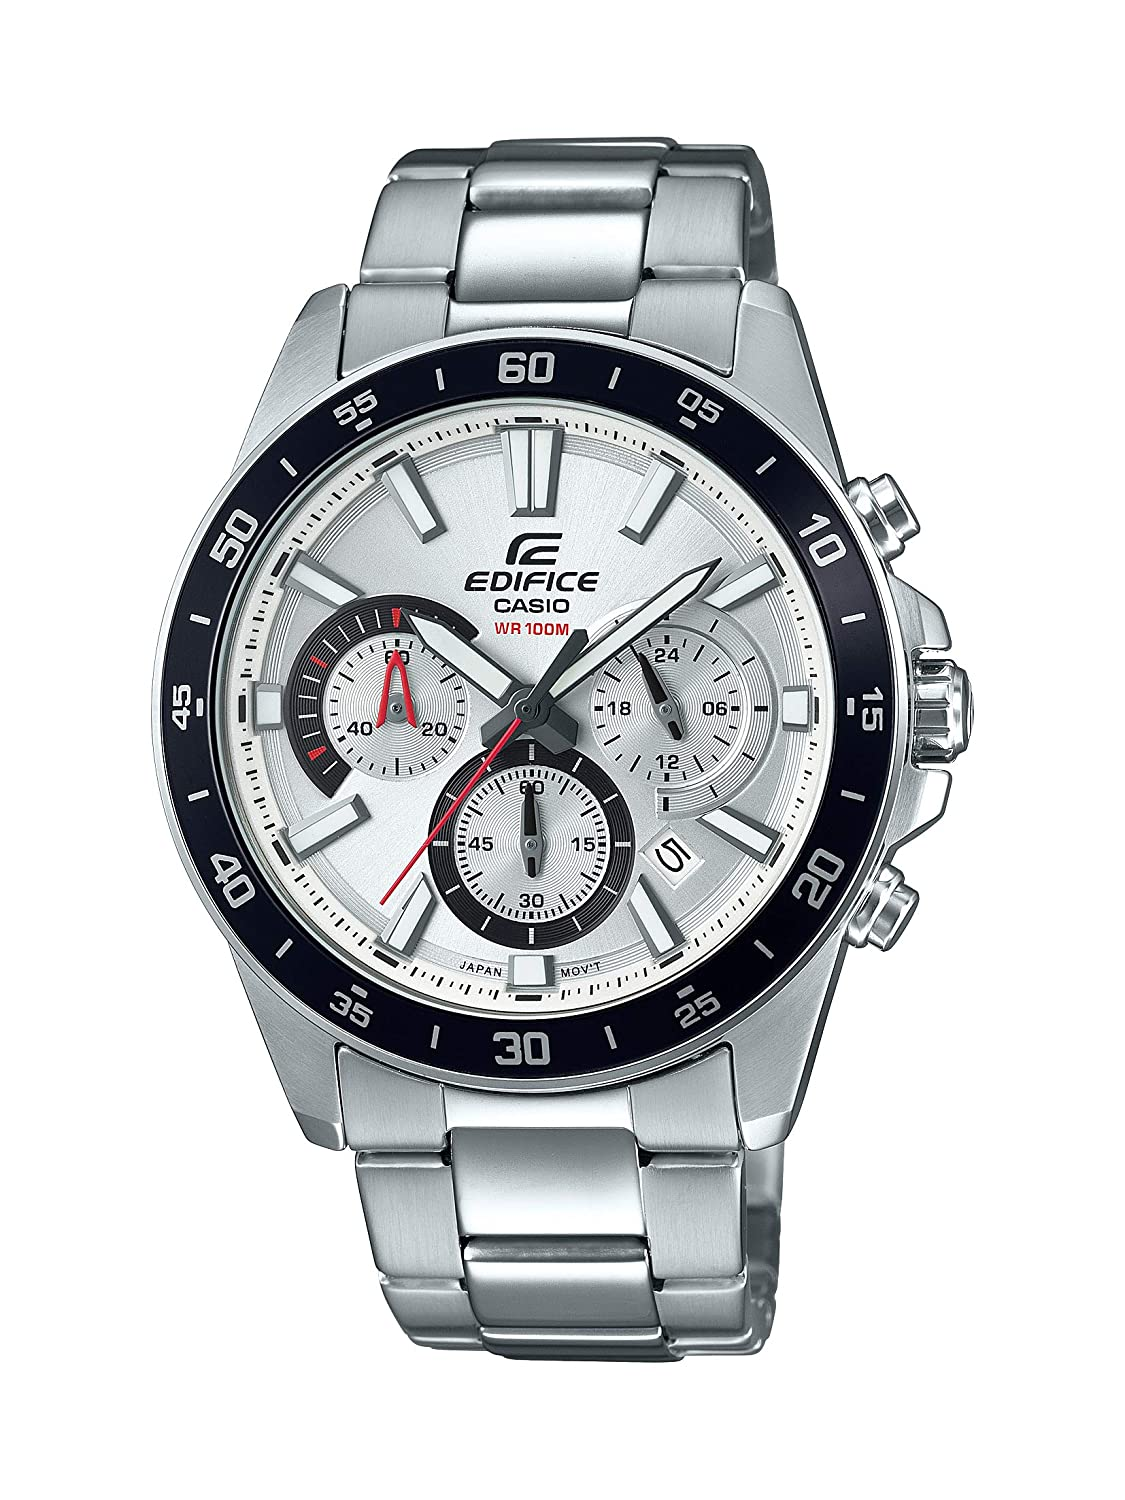 Casio Men Edifice Quartz Watch with StainlessSteel Strap Silver 216 Model EFV570D7AVUDF